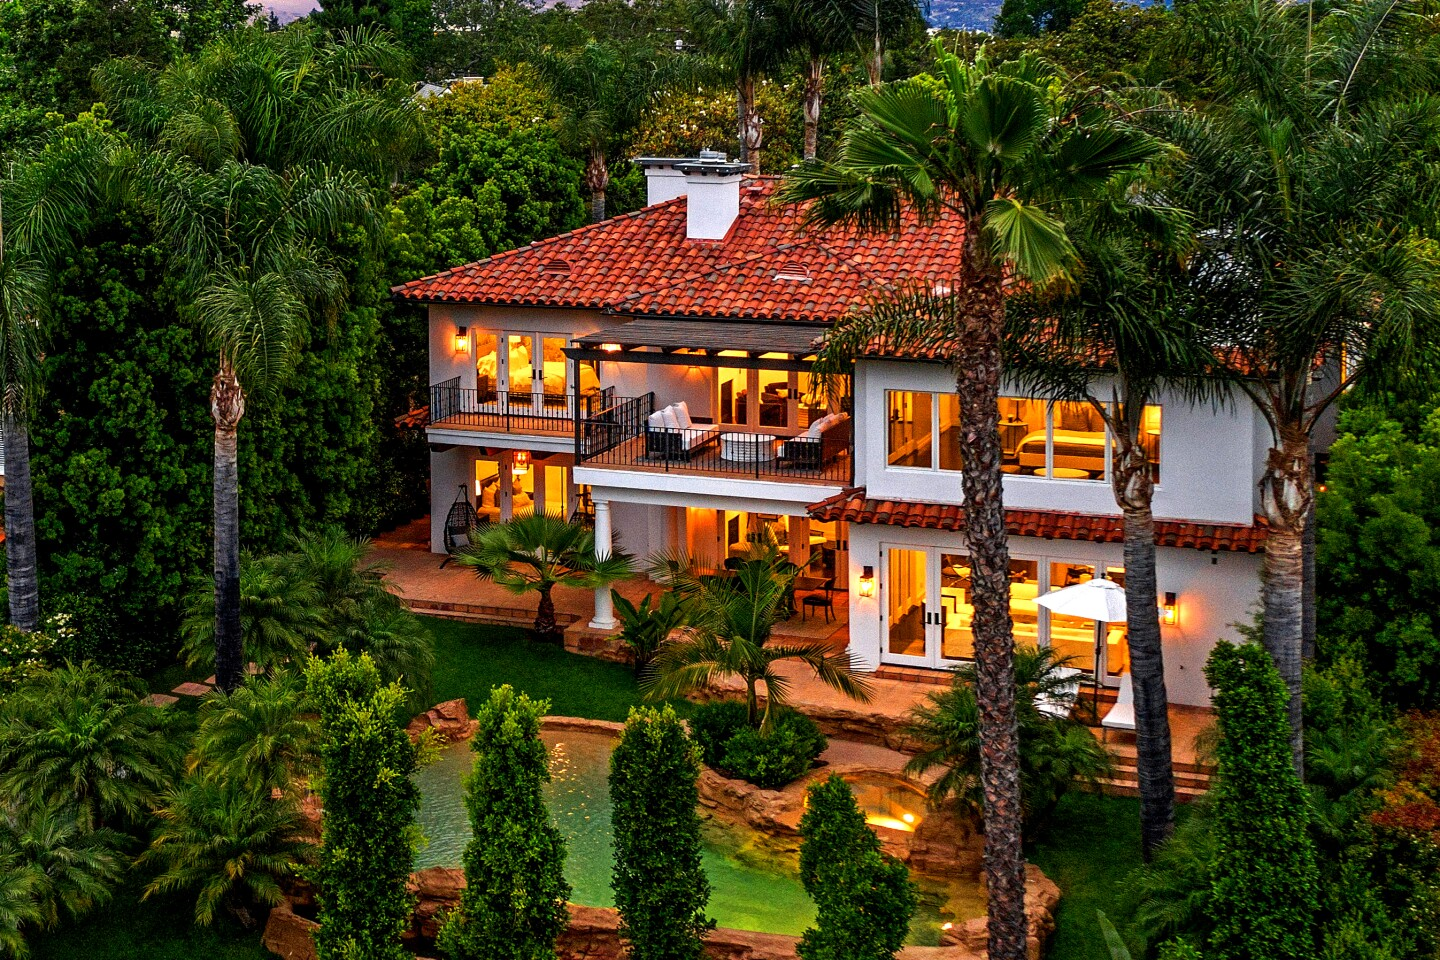 The two-story home, listed for a dollar shy of $8 million, sits on more than a third of an acre overlooking the lake. Polished to a fine sheen, the designer-done interiors feature dark wood floors that stand out against white walls and cabinetry. Outside, a lagoon-style swimming pool with a baja deck extends outward below the lake. Below the pool is a small dock for paddleboats. A two-room recording studio lies beneath the home where there's also a subterranean garage.